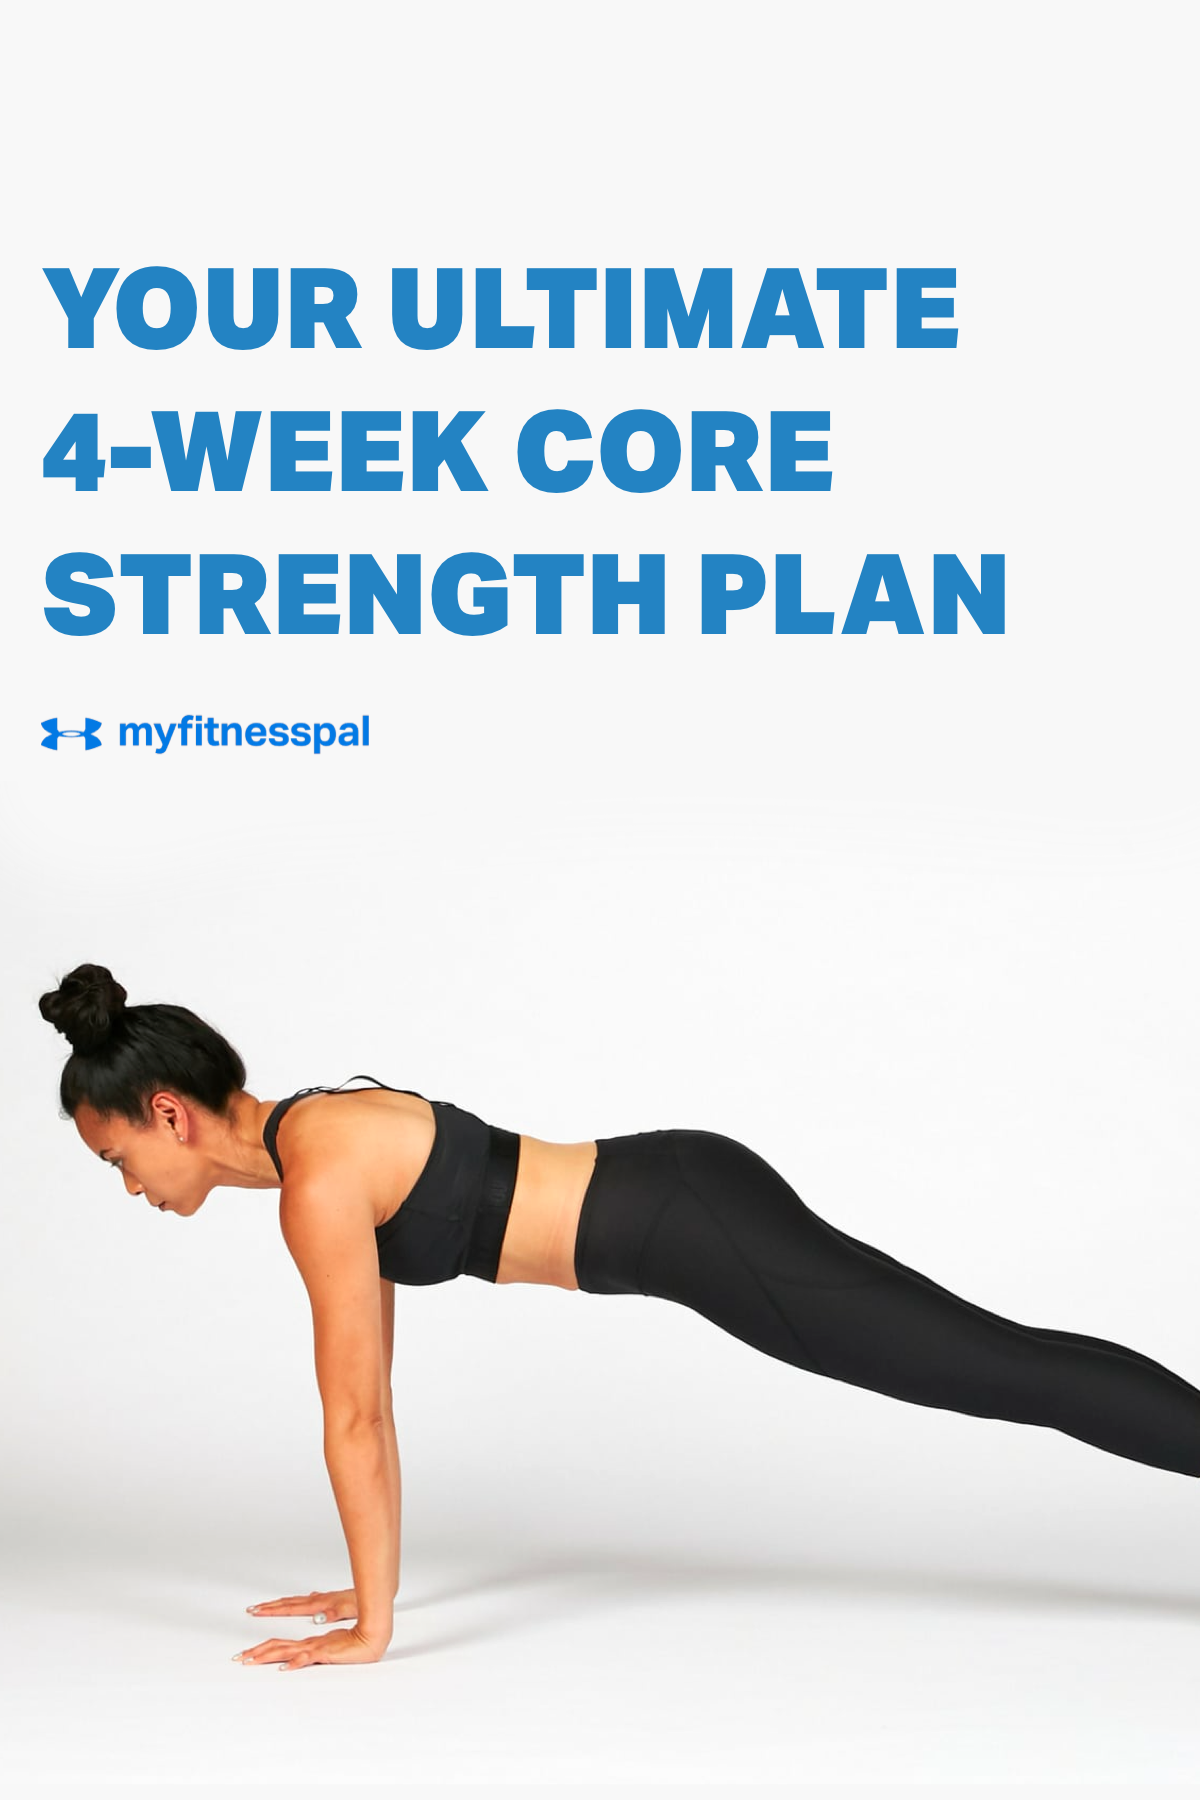 Tighten your midsection while also developing better posture, lessening back pain and achieving better athletic performance with this ultimate 4-week core strength plan. Along with plenty of sleep and a great diet, these abdominal exercise packed with a variety of planks will lead you to a stronger core in 28 days. #MyFitnessPal #core #strengthtraining #4weekworkout #workoutplan #trainingtips #planks #legcurls #homeexercises #homeworkoutplans